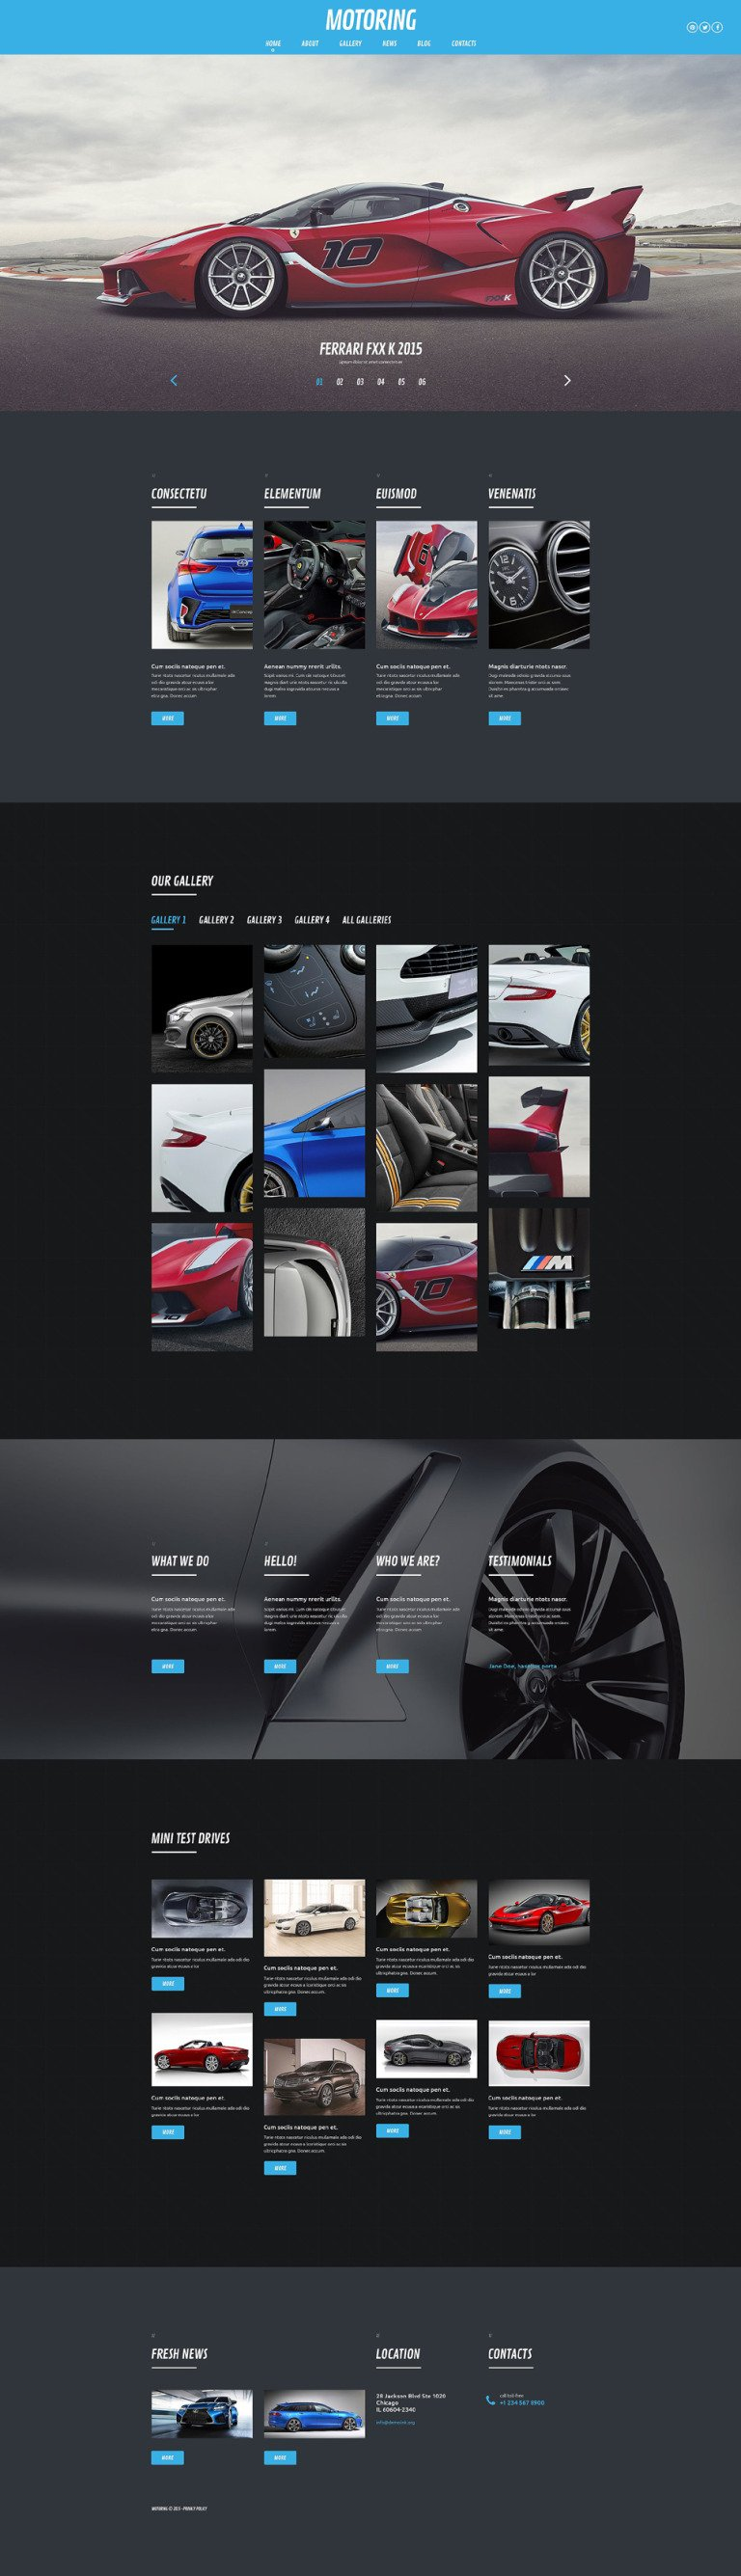 Motoring WordPress Theme New Screenshots BIG